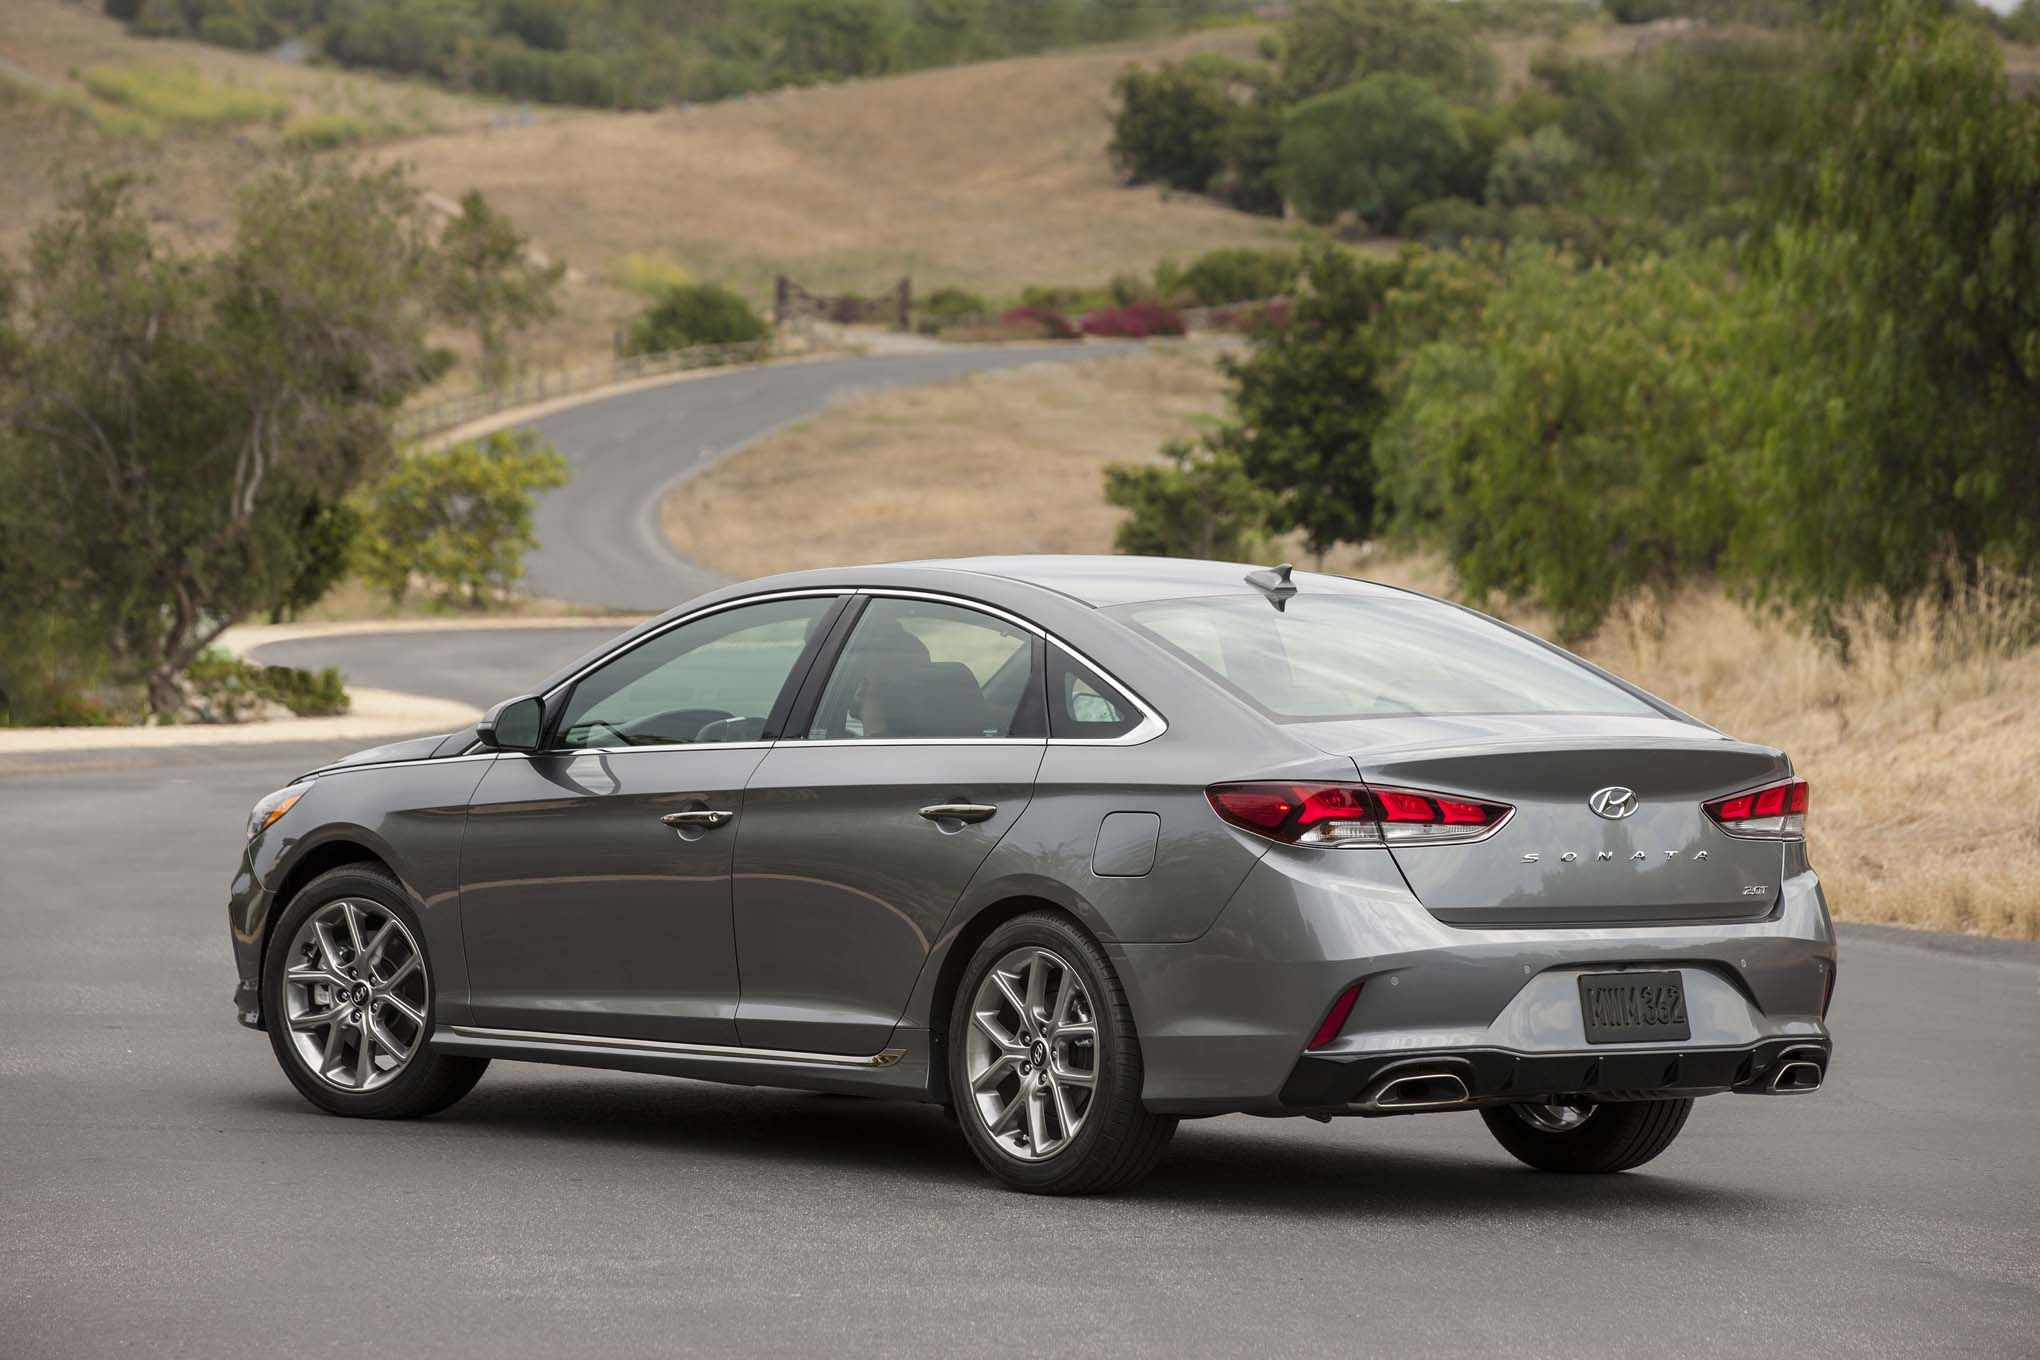 The 2018 Hyundai Sonata Hybrid Represents One Of Best Value For Money Choices